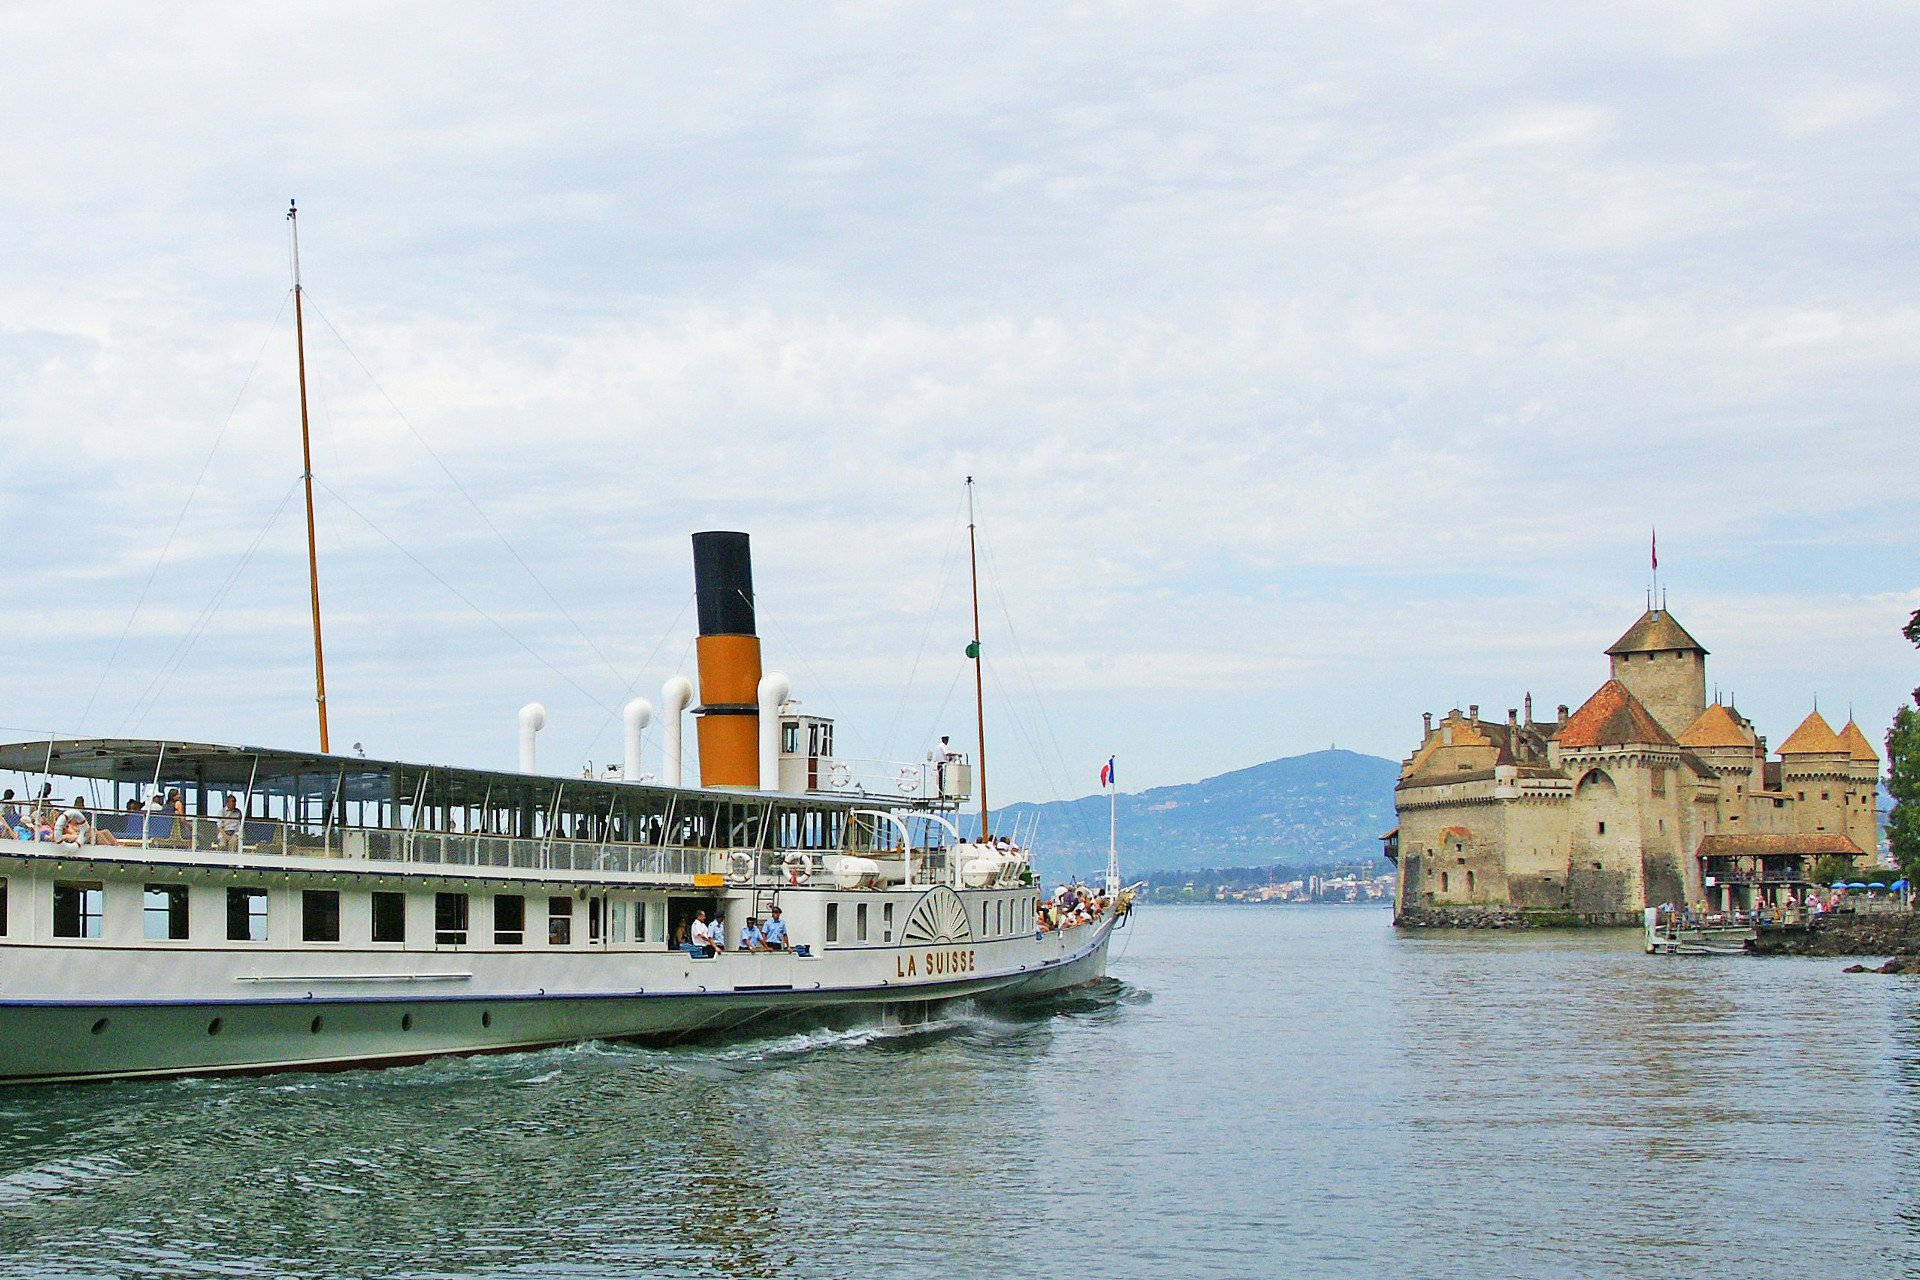 private tour-captain-steam boat-Leman Lake-Switzerland